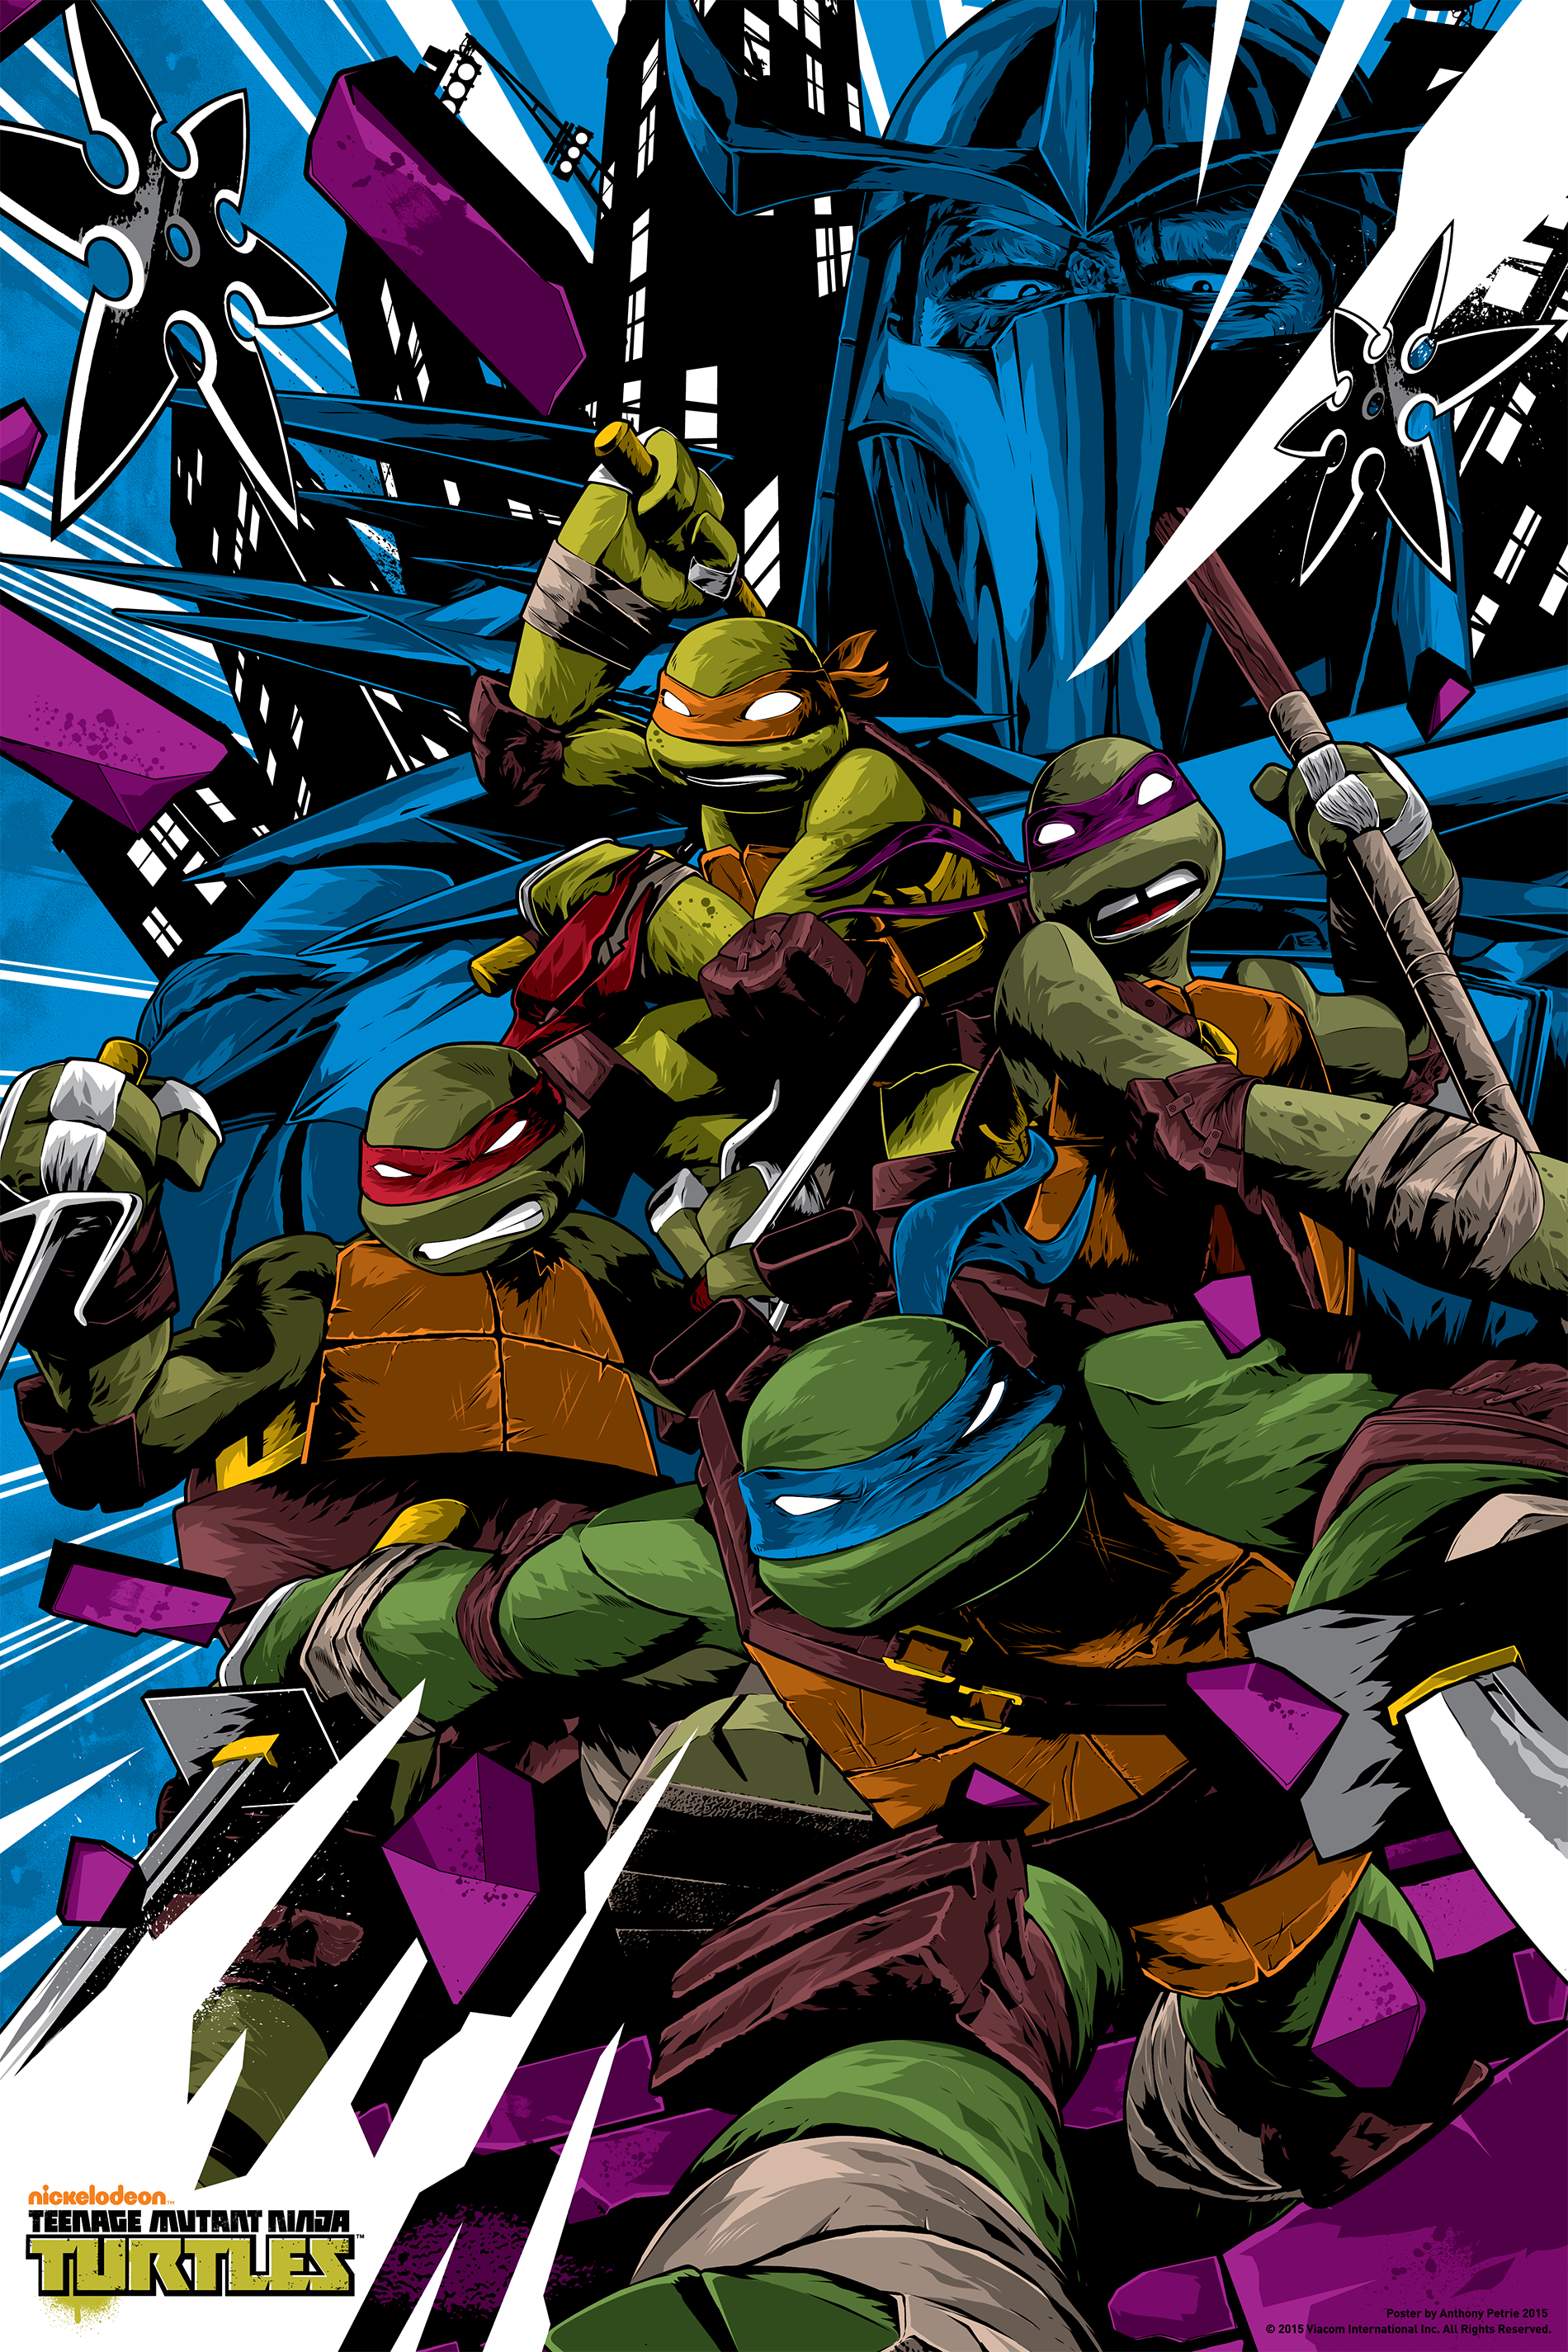 Anthony Petrie Tmnt Dvd Poster Insert Teenage Mutant Ninja Turtles Artwork Tmnt Art Tmnt Wallpaper